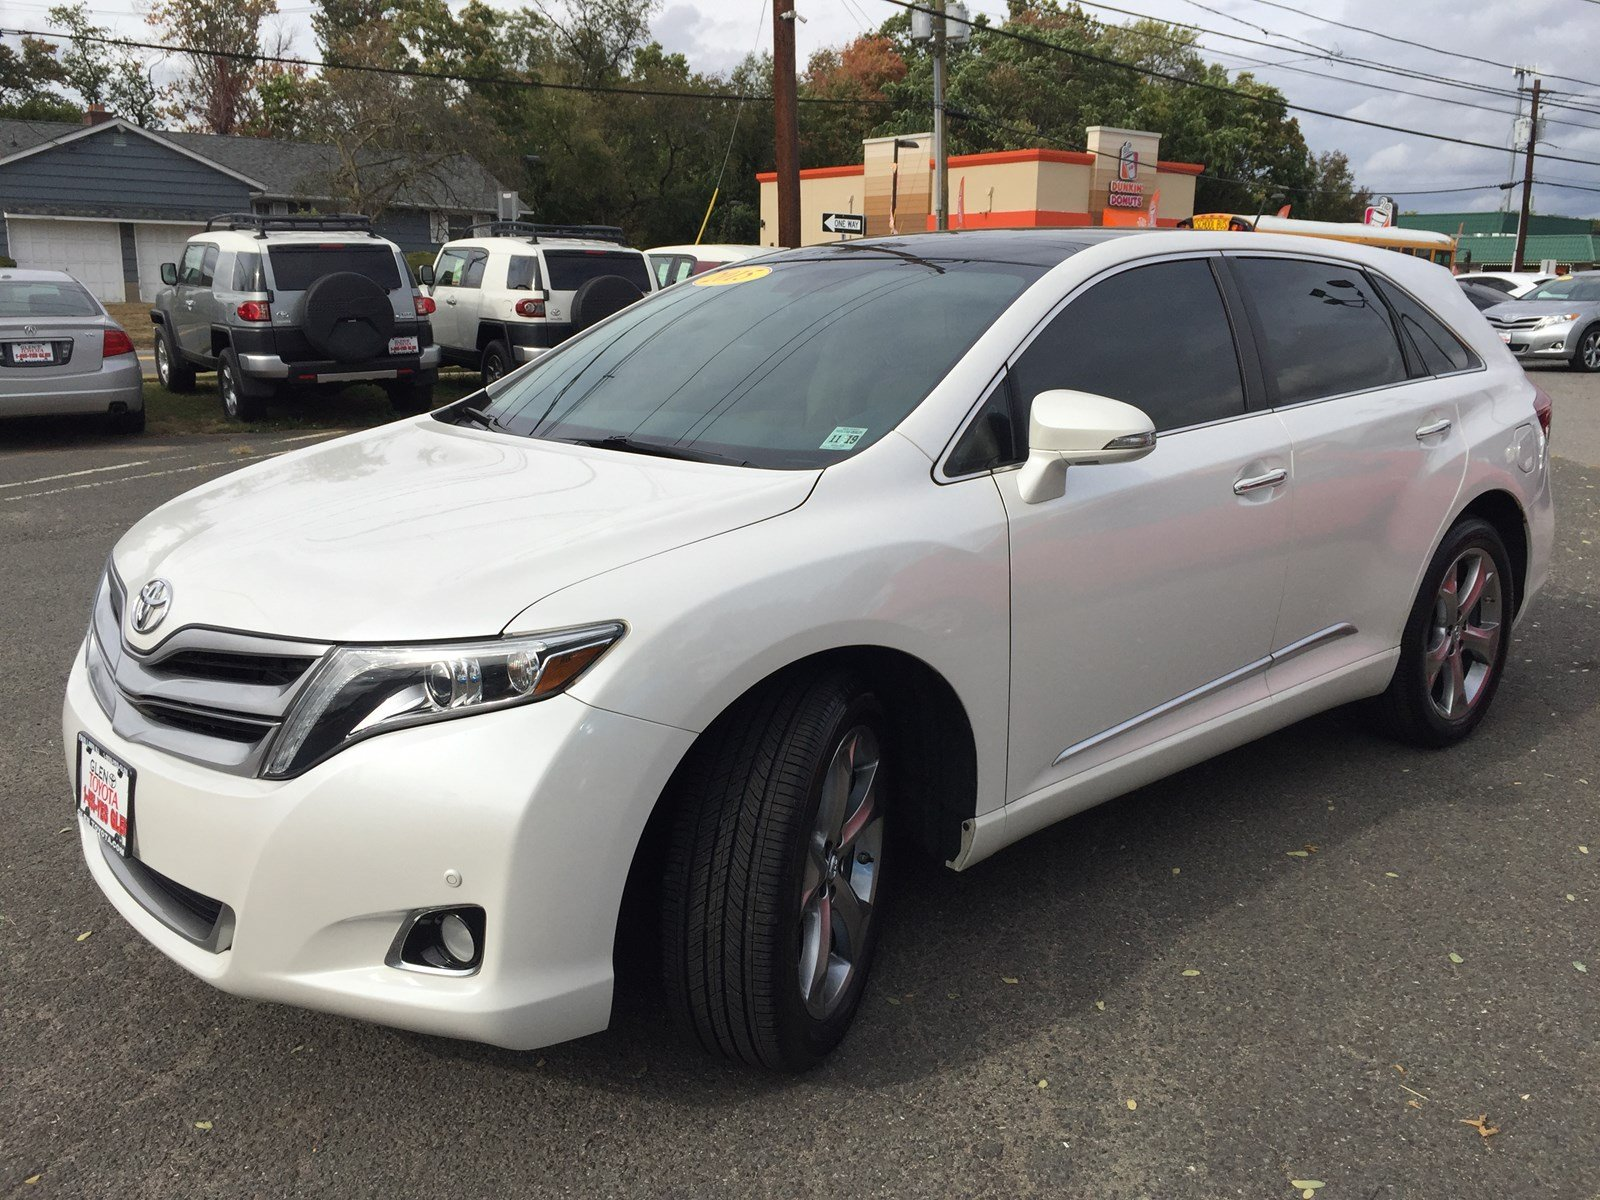 passenger toyota wagon front xle fwd thumbnails door venza mdp cars photo natl